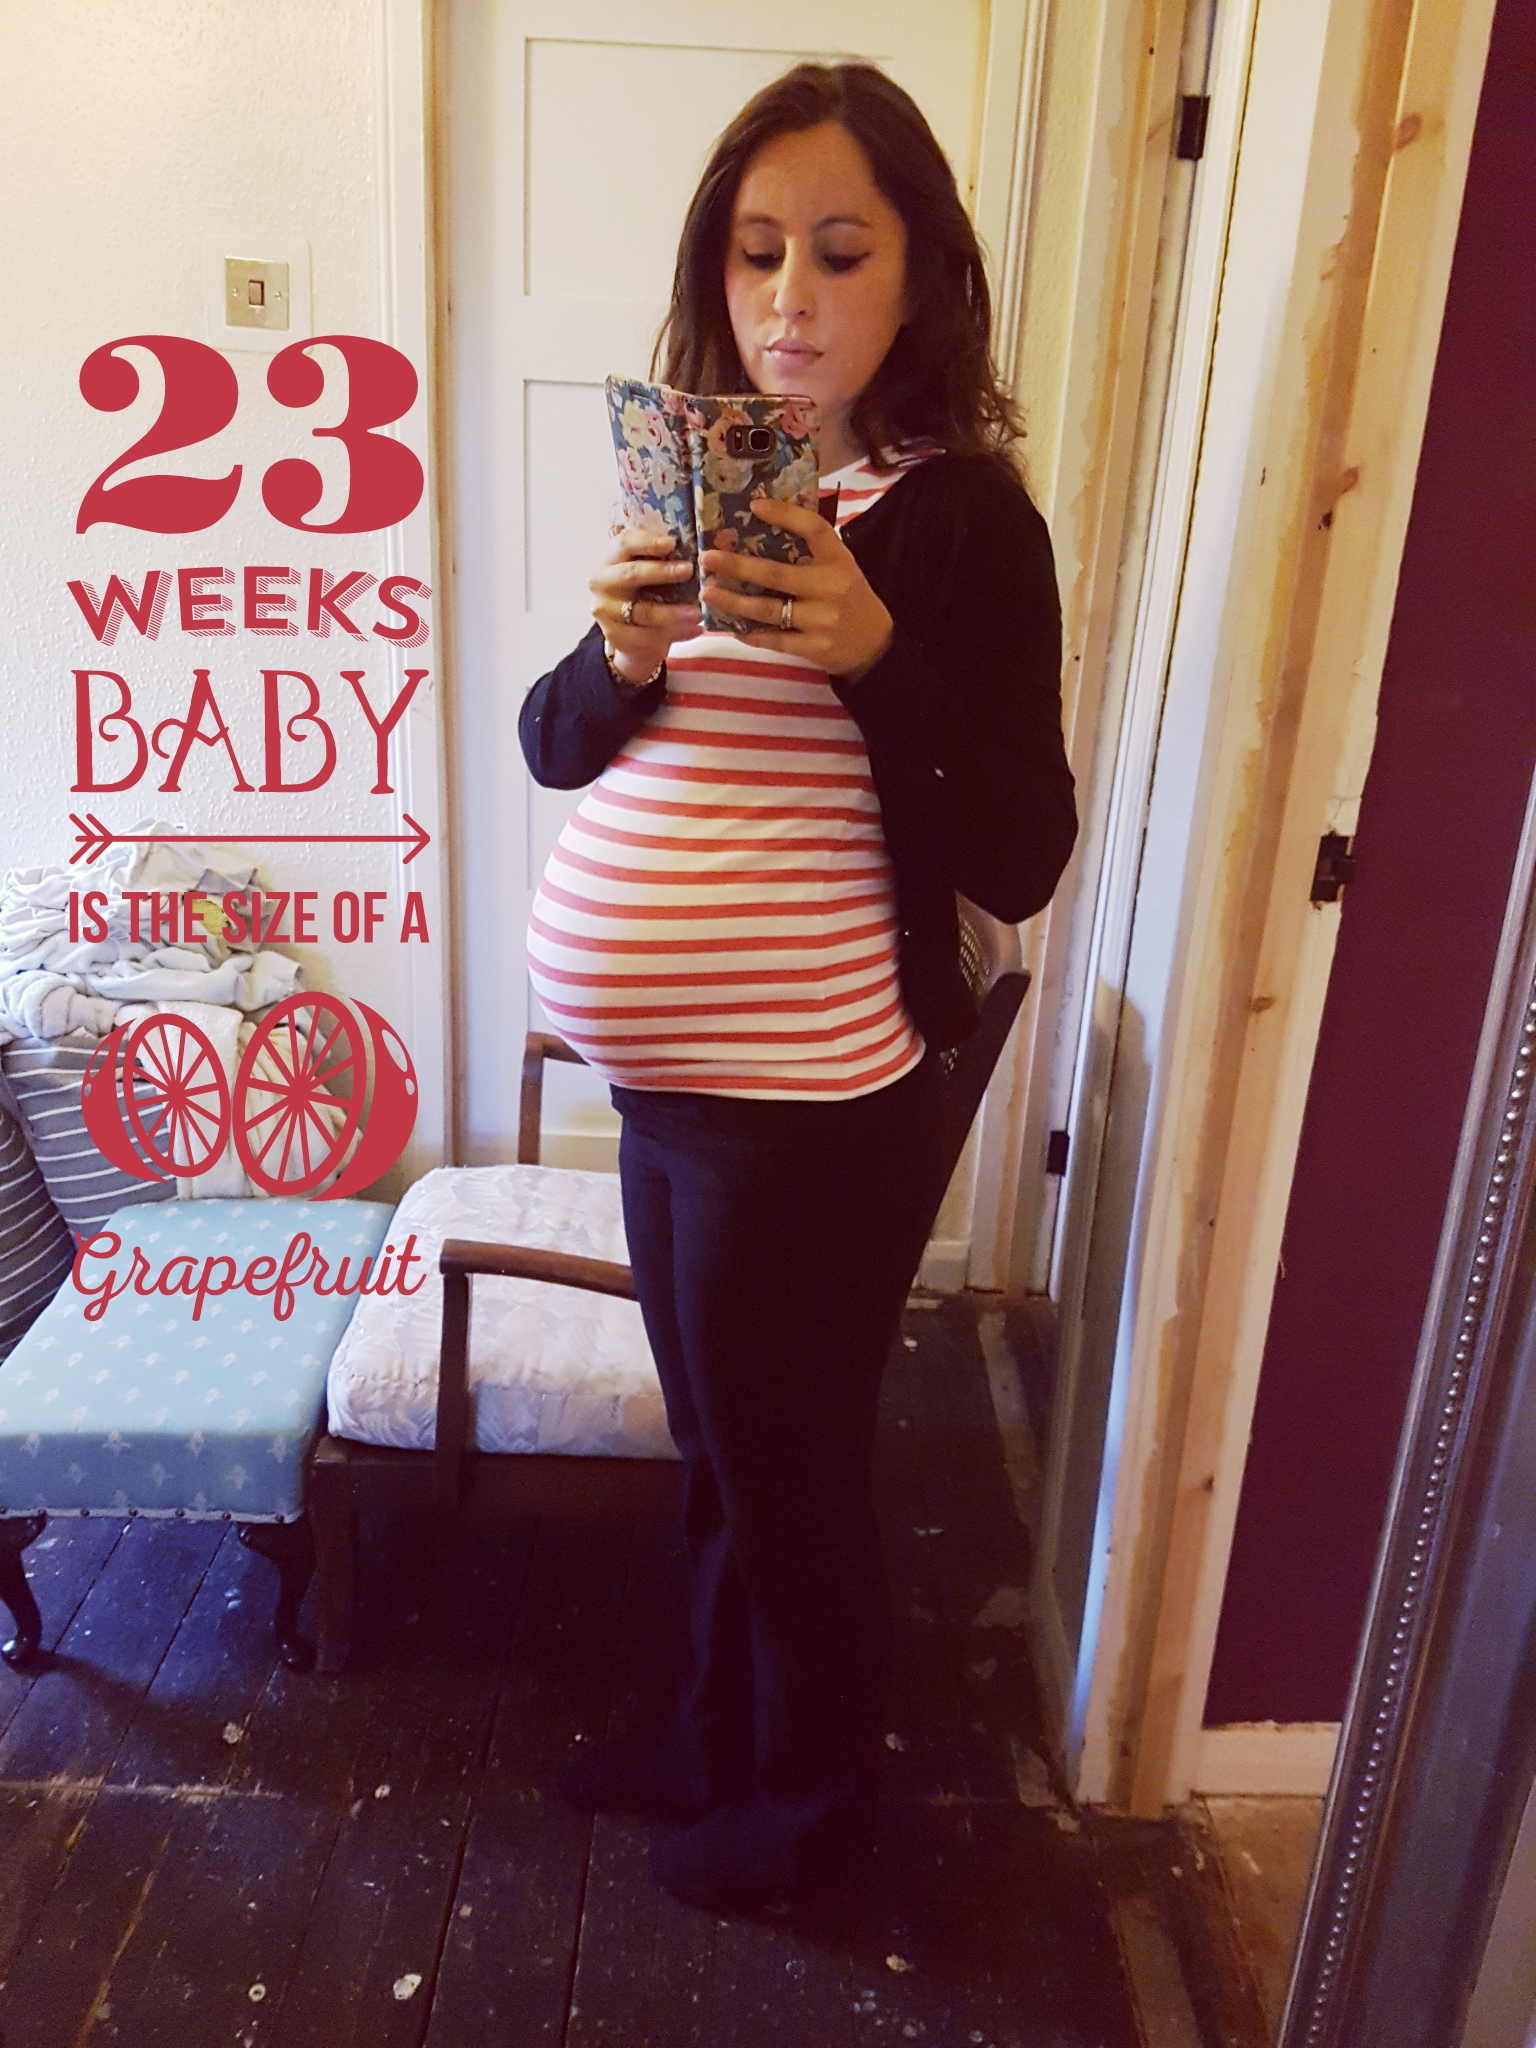 23 weeks pregnant - So they call me Jam Jar Gill...